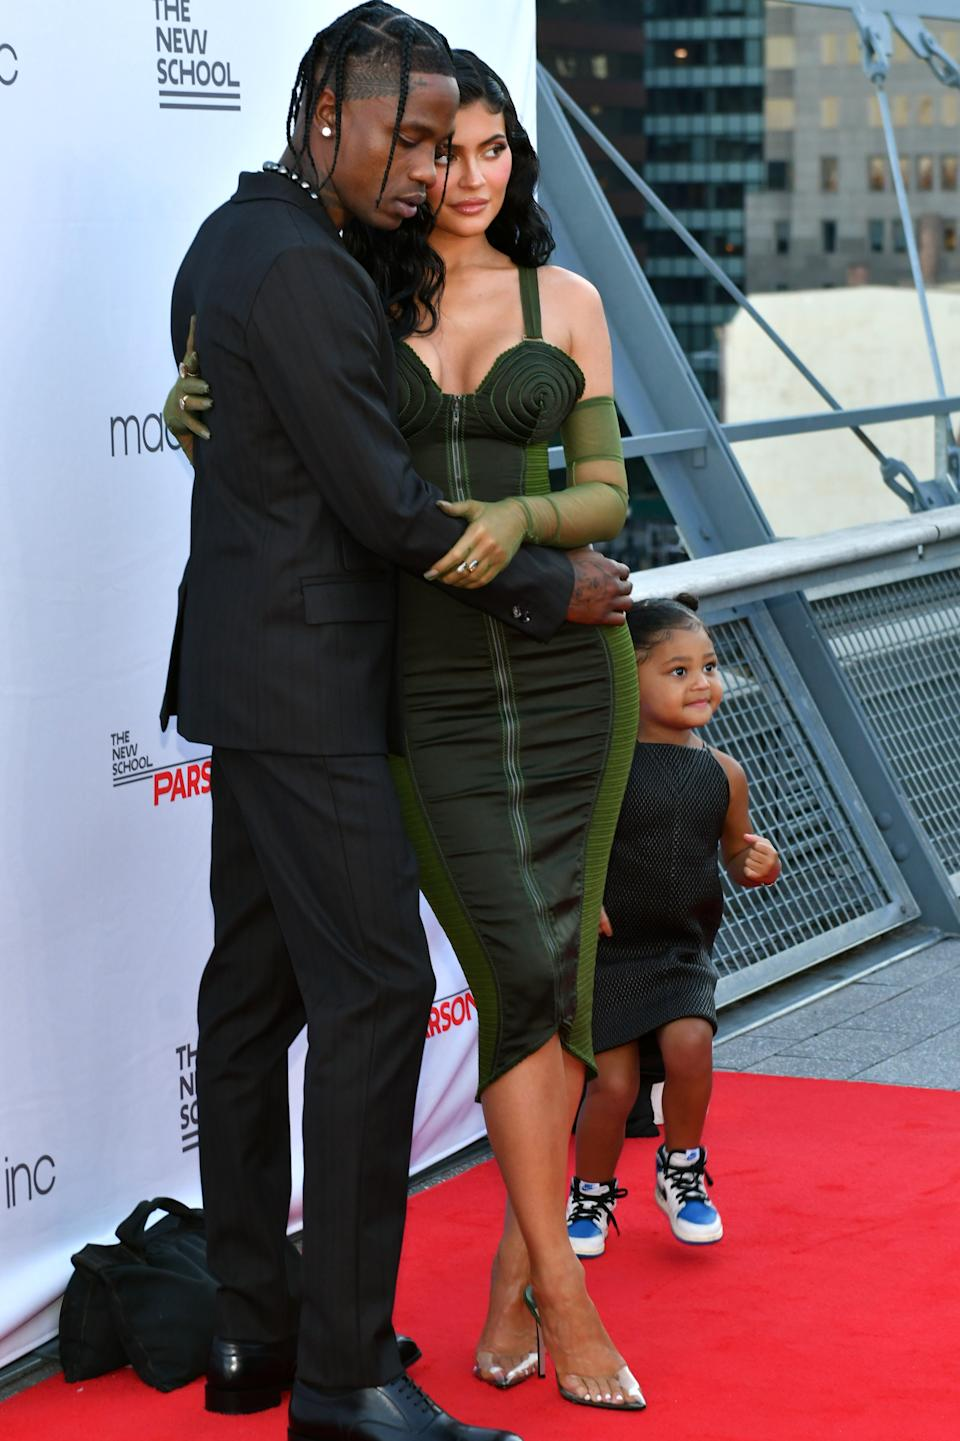 NEW YORK, NEW YORK - JUNE 15: Travis Scott, Kylie Jenner, and Stormi Webster attend the The 72nd Annual Parsons Benefit at Pier 17 on June 15, 2021 in New York City. (Photo by Craig Barritt/Getty Images for The New School)